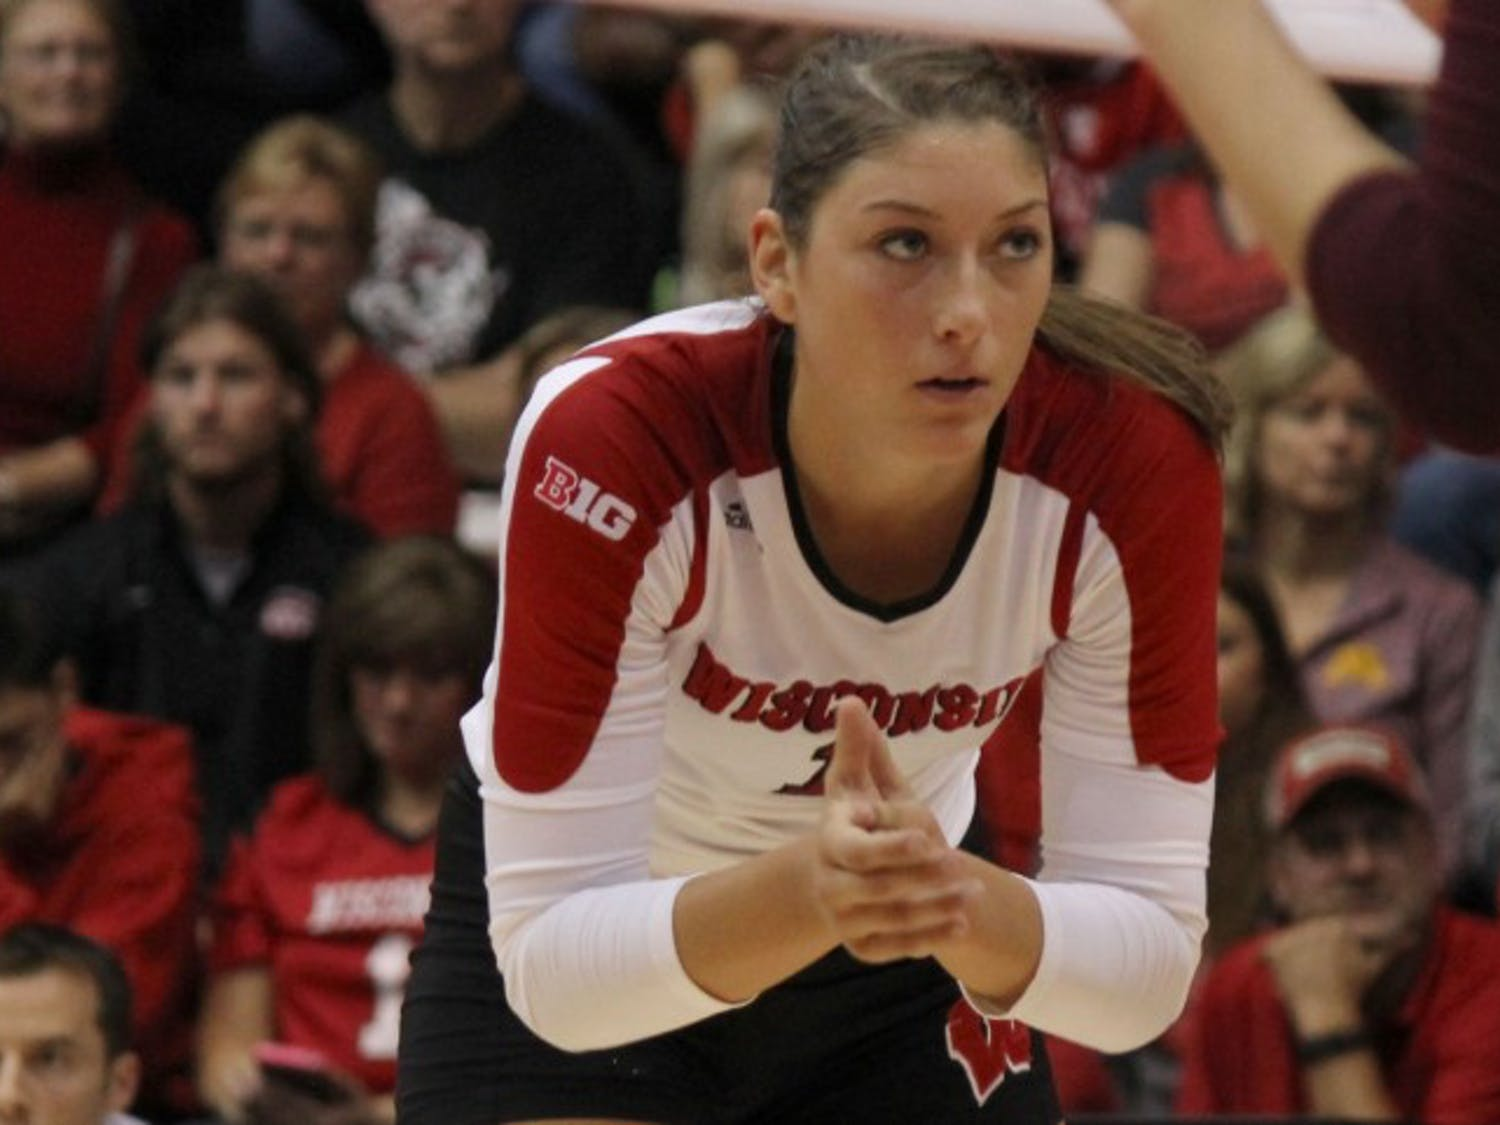 Lauren Carlini leads a powerhouse program into conference play with a stellar 8-1 record.